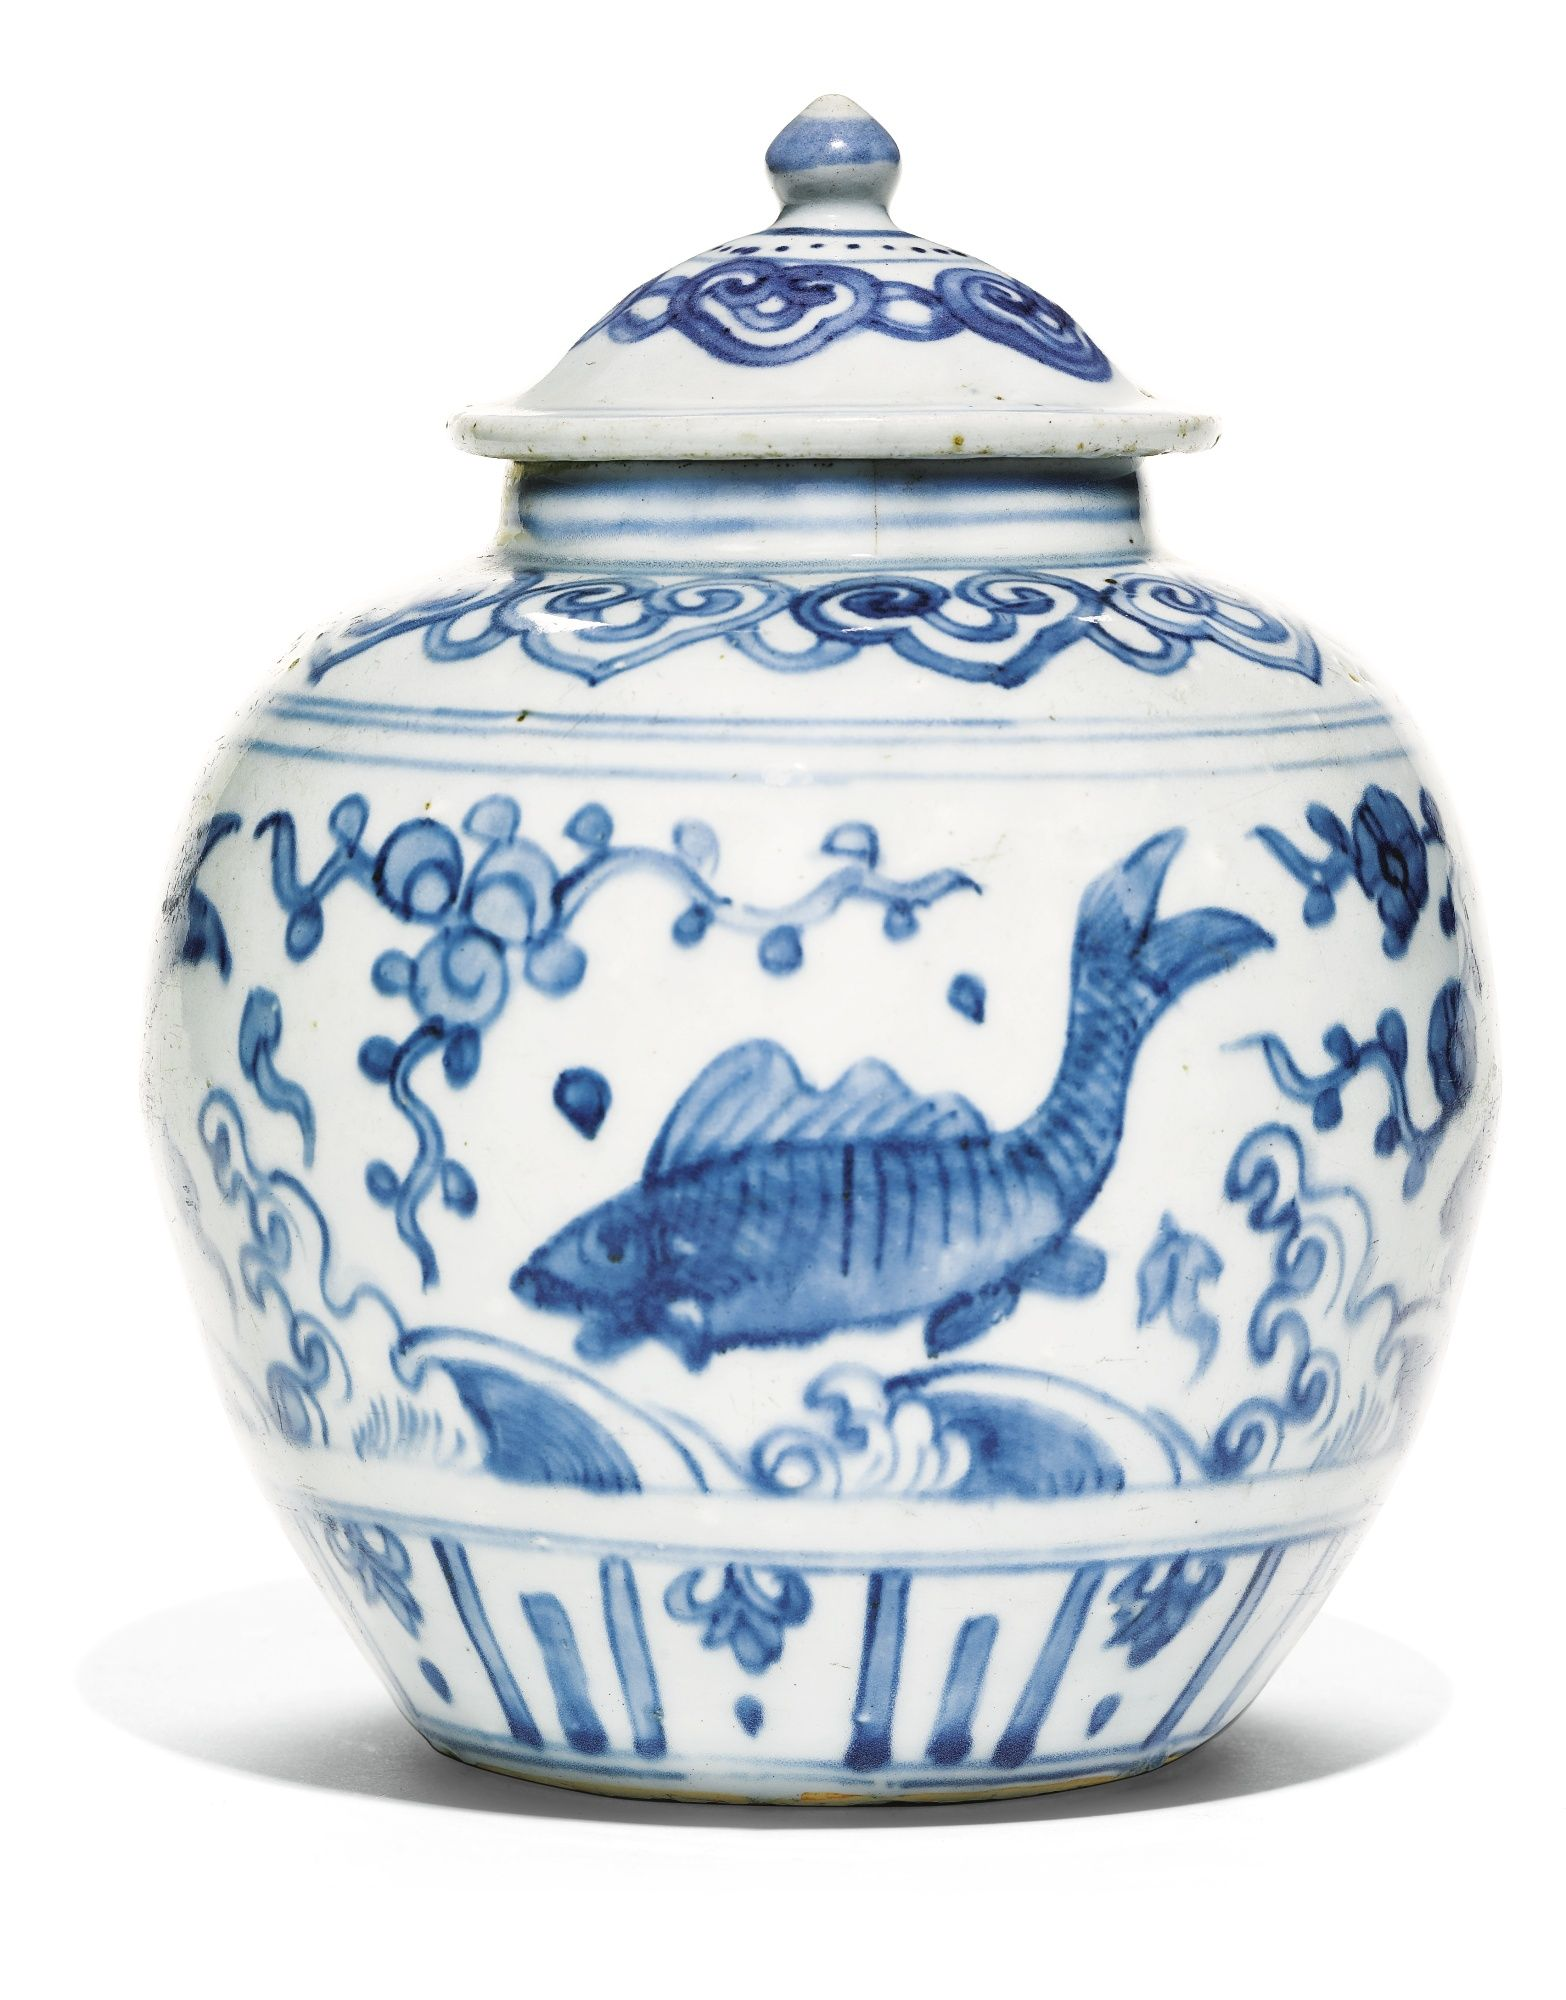 A blue and white fish jar and coverbrming dynasty jiajing a blue and white fish jar and cover ming dynasty jiajing period reviewsmspy